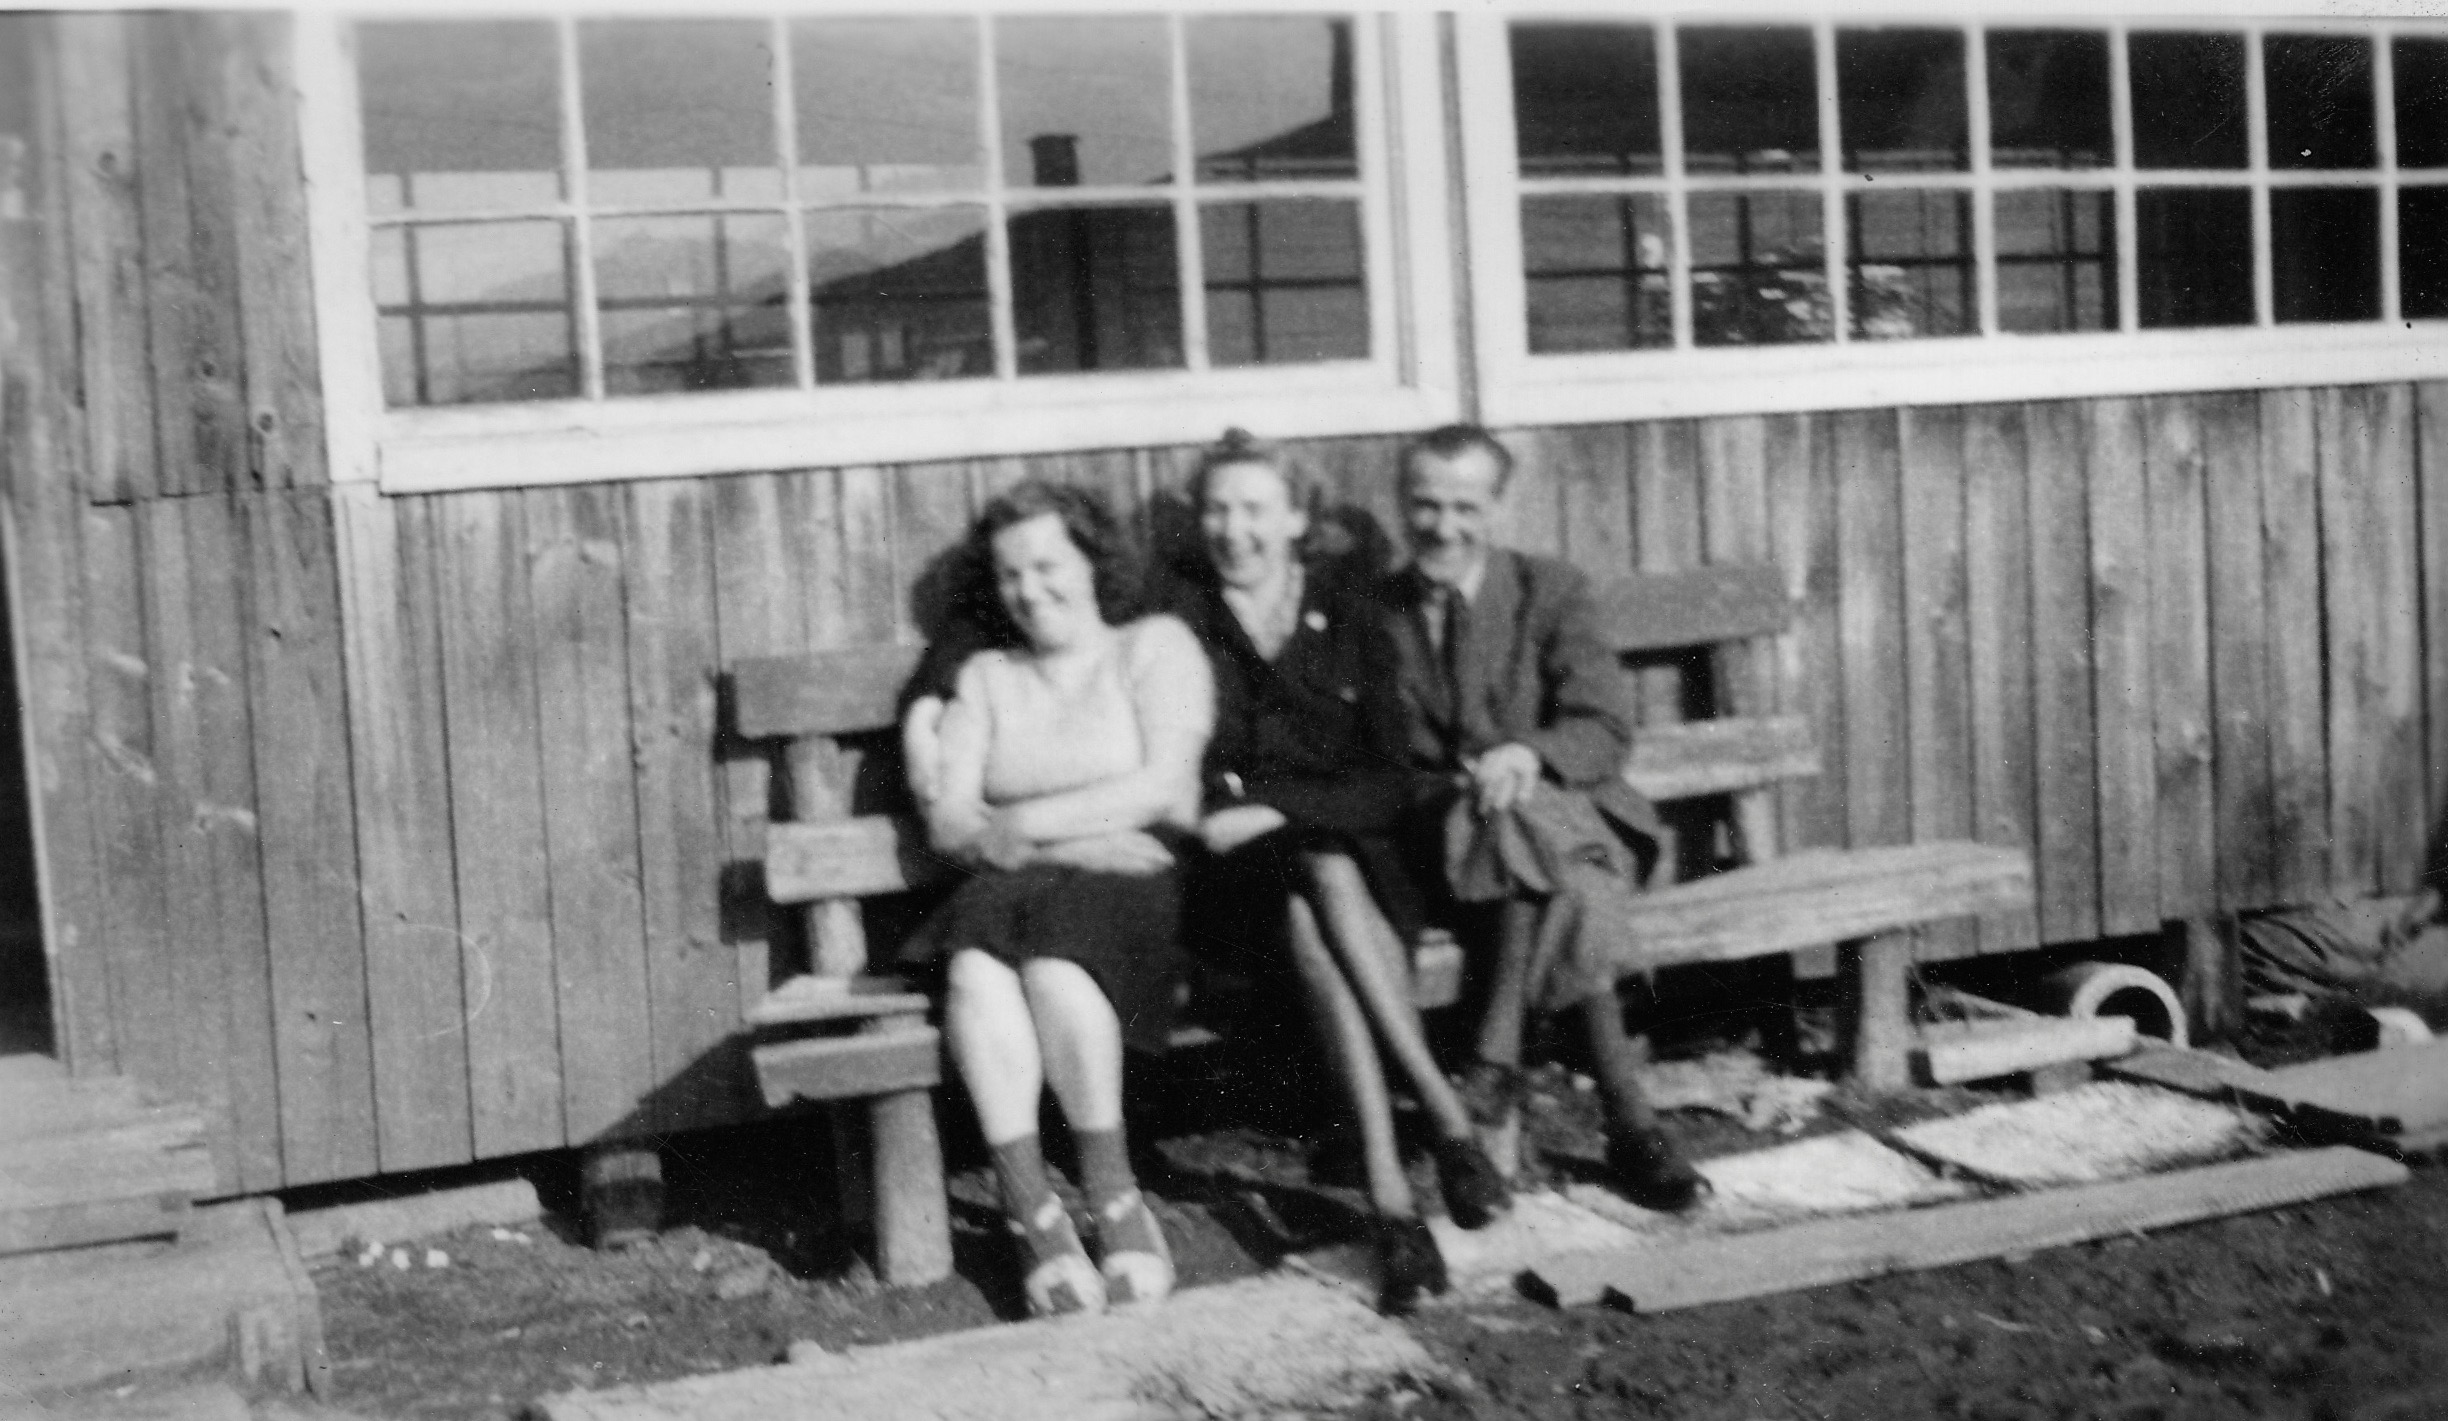 Kapfenberg Camp 2, Clare McMurray with Mrs & Mr Winter March 1949